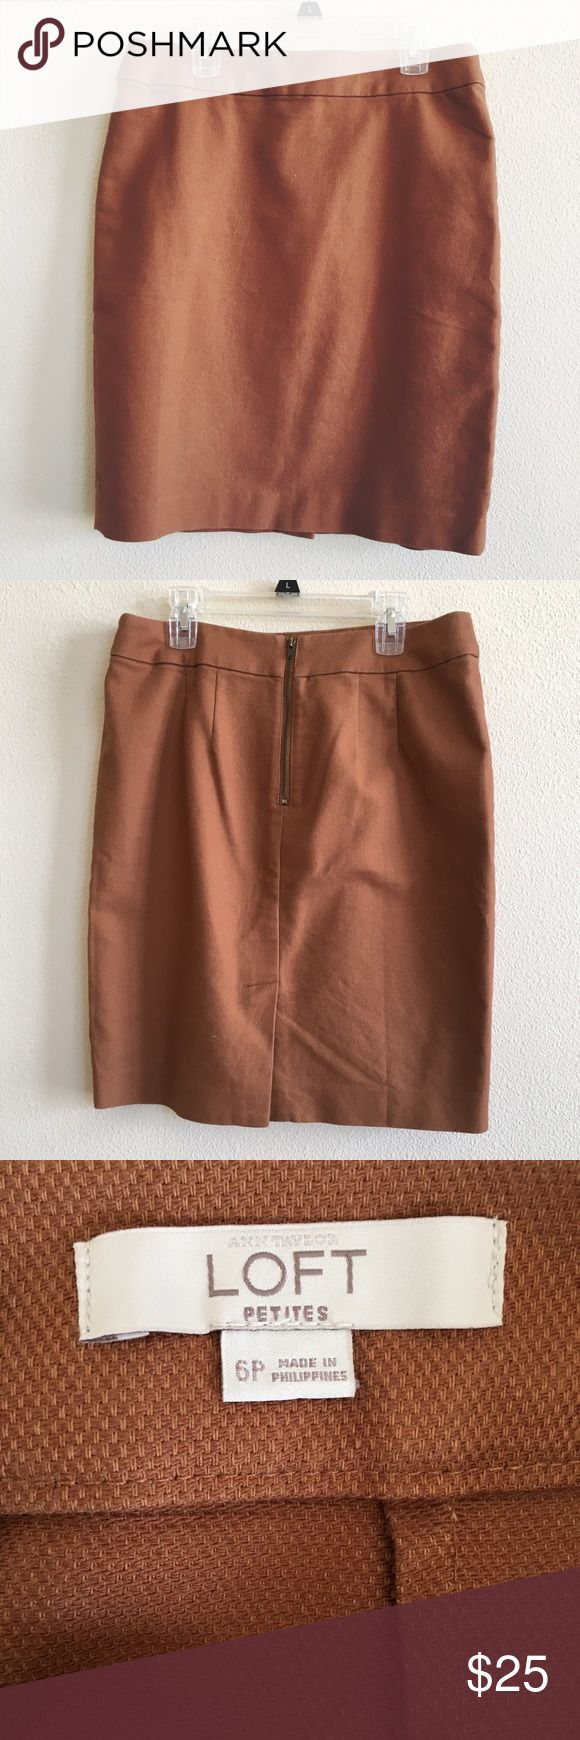 LOFT Brown Pencil Skirt A classic camel brown pencil skirt with back zipper. In perfect condition. LOFT Skirts Pencil